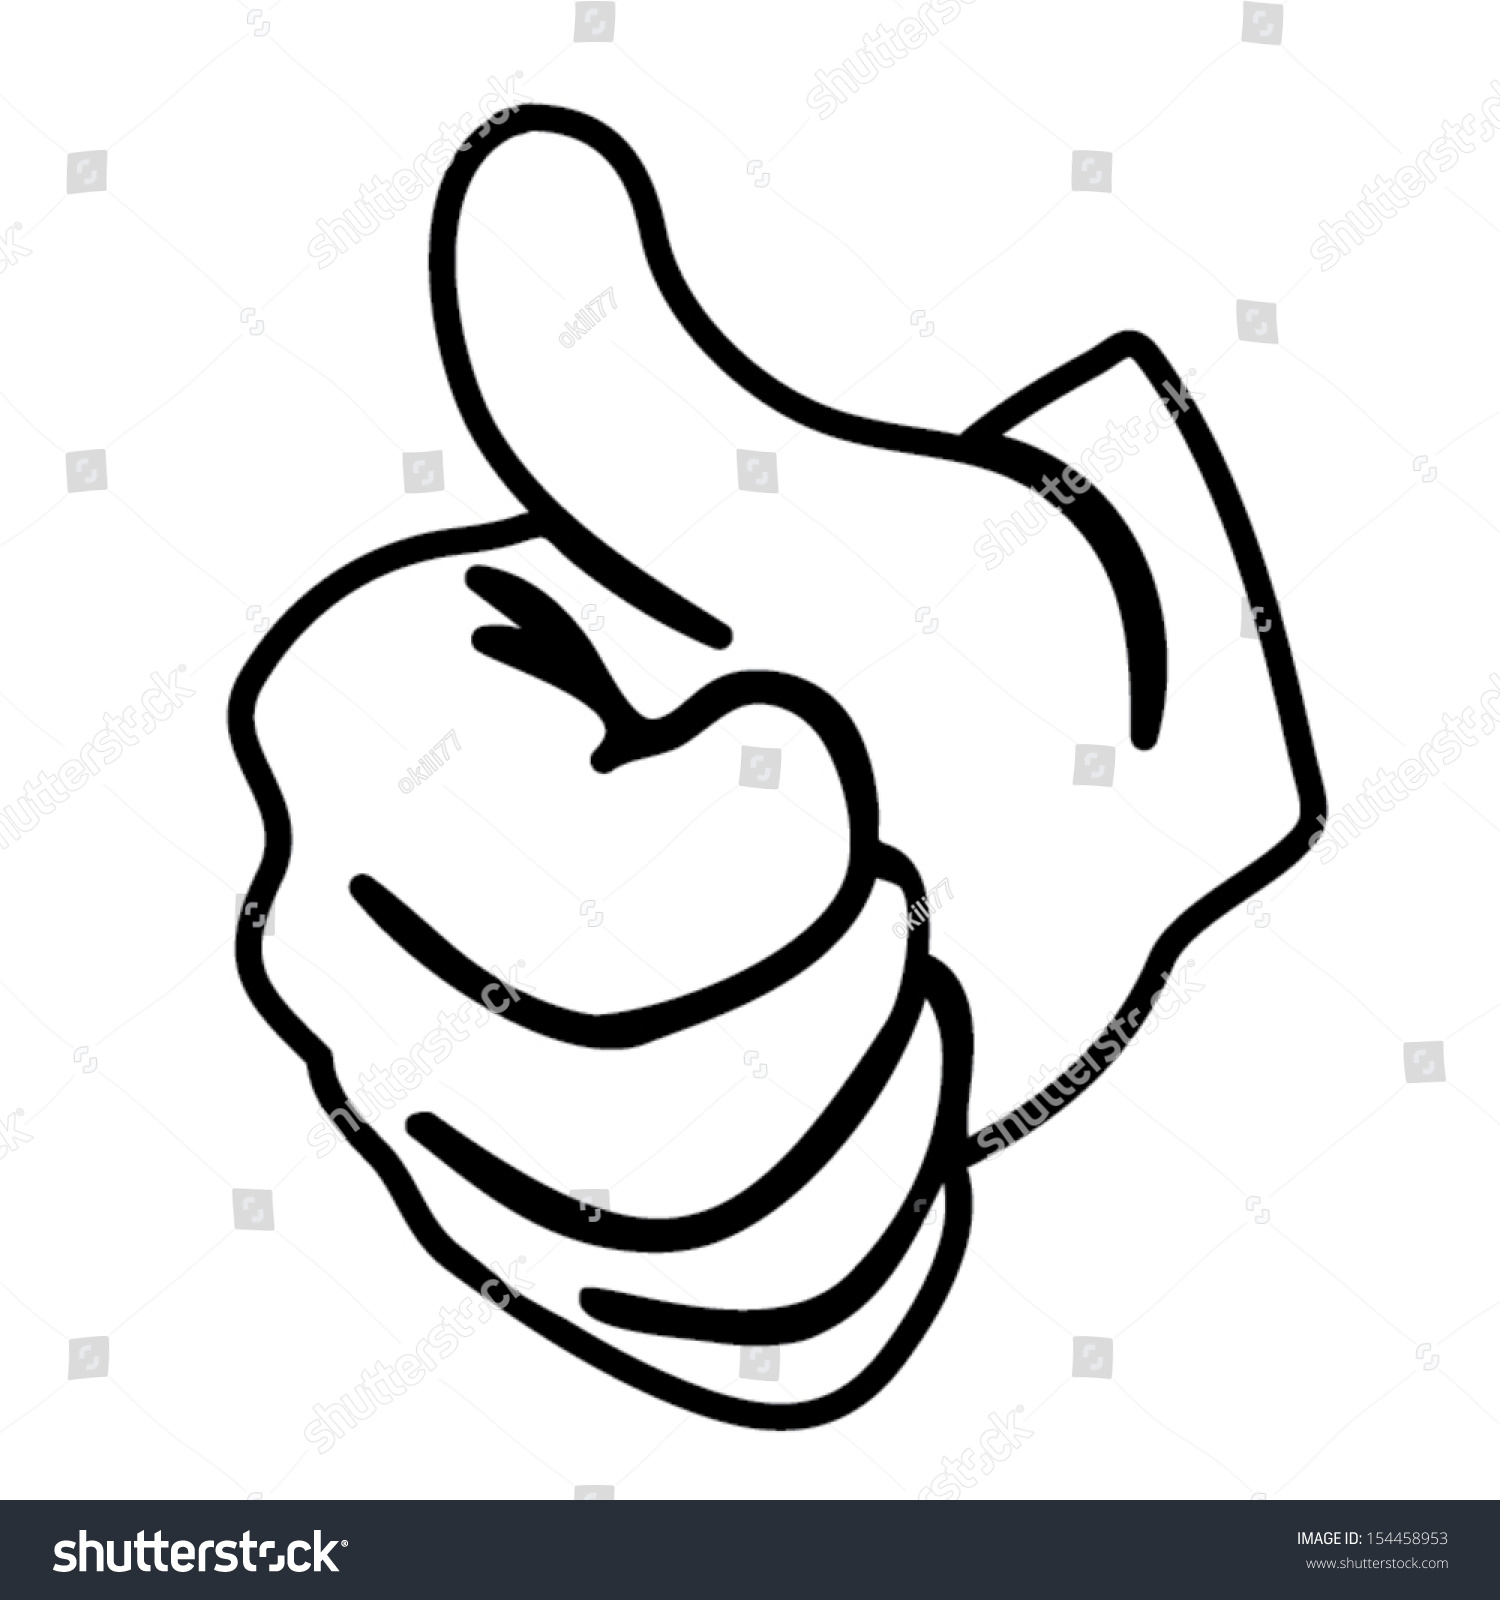 Hand Thumbs Vector Outline Stock Vector 154458953